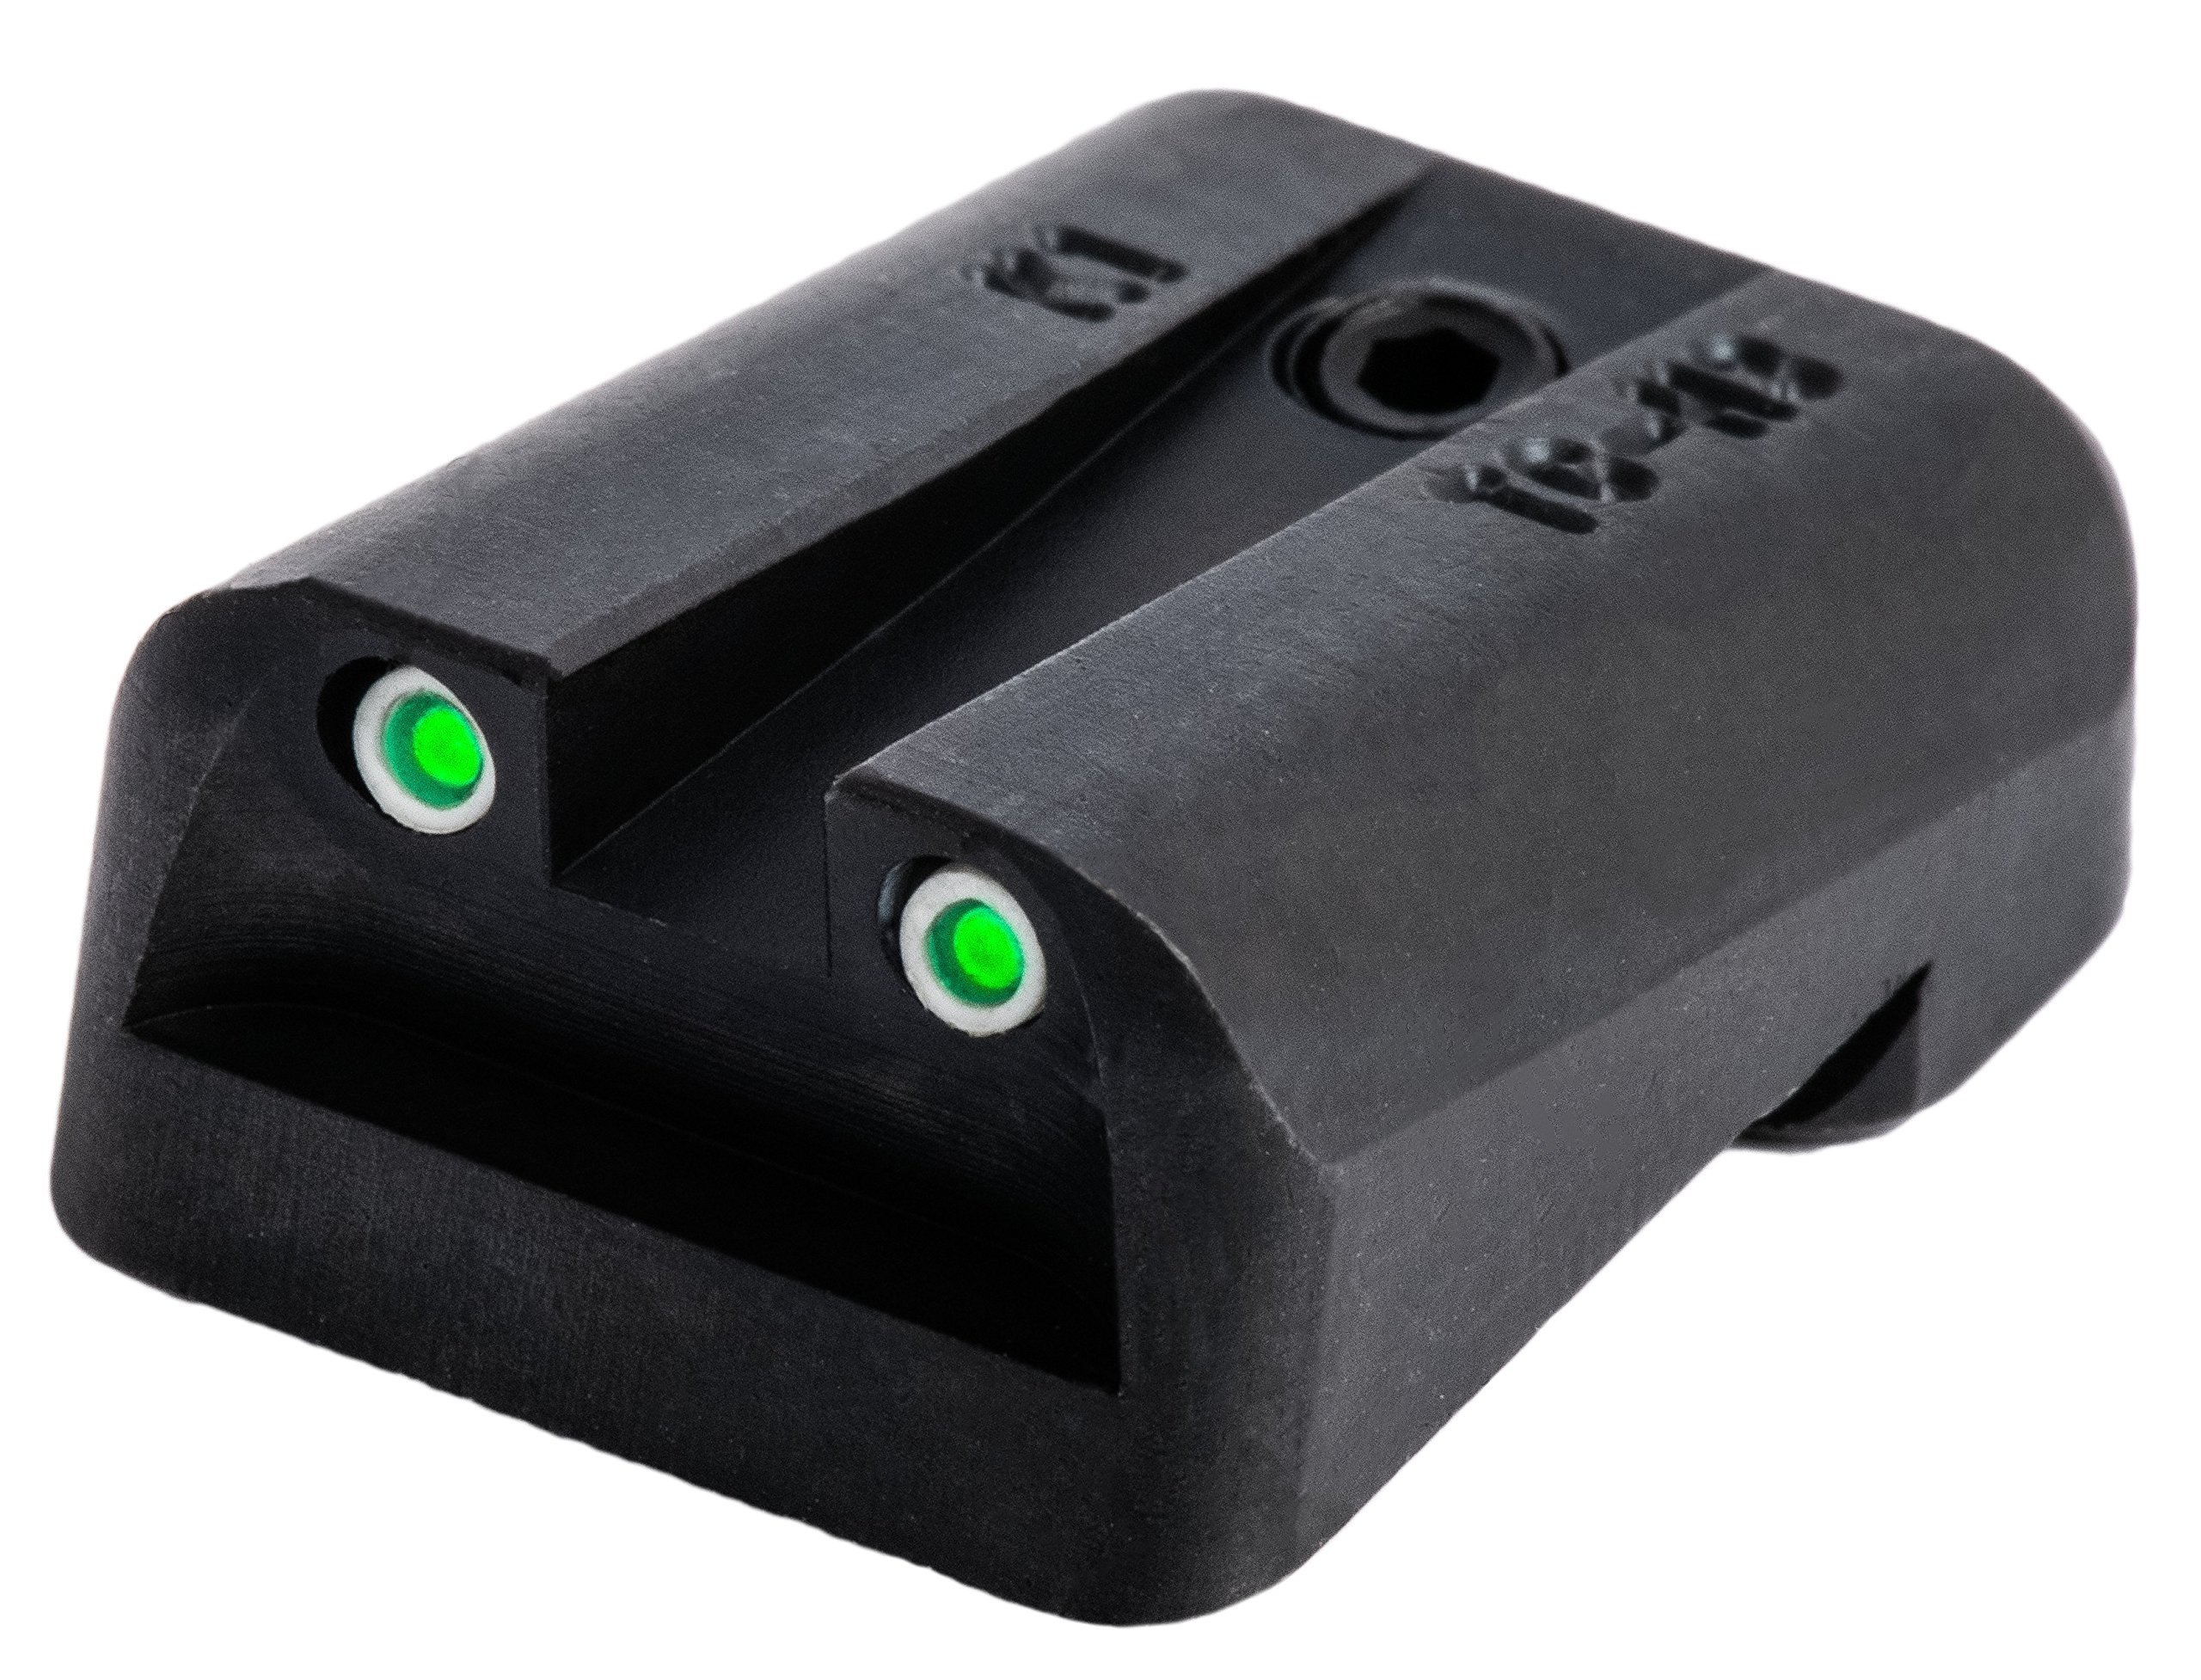 TRUGLO Tritium Handgun Glow-in-the-Dark Night Sights for Kimber Pistols, Kimber 1911 Models with Fixed Rear Sight by TRUGLO (Image #3)